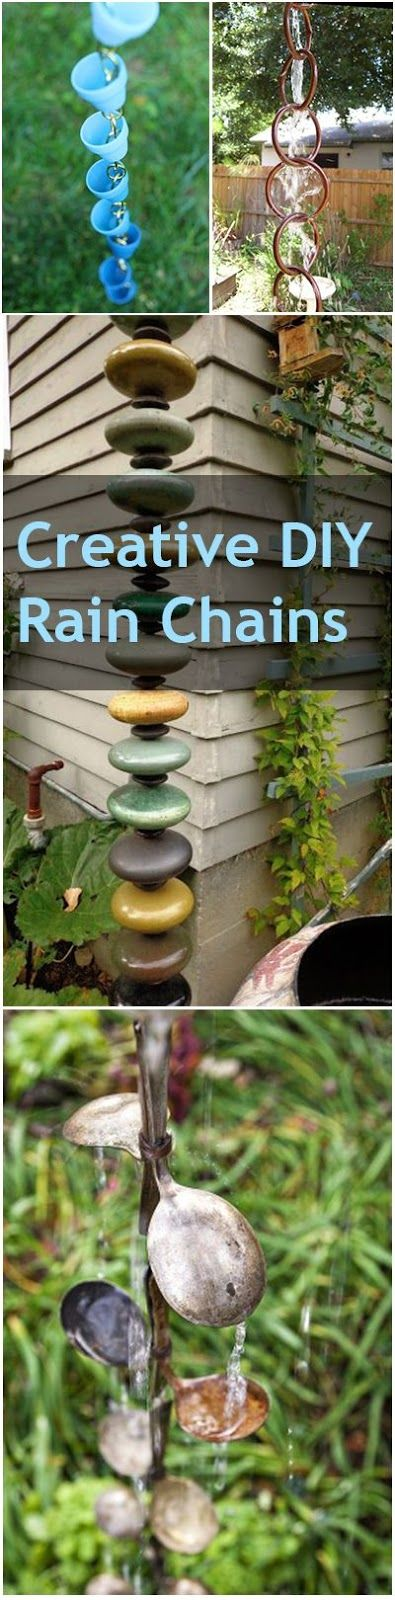 10 creative diy rain chain ideas